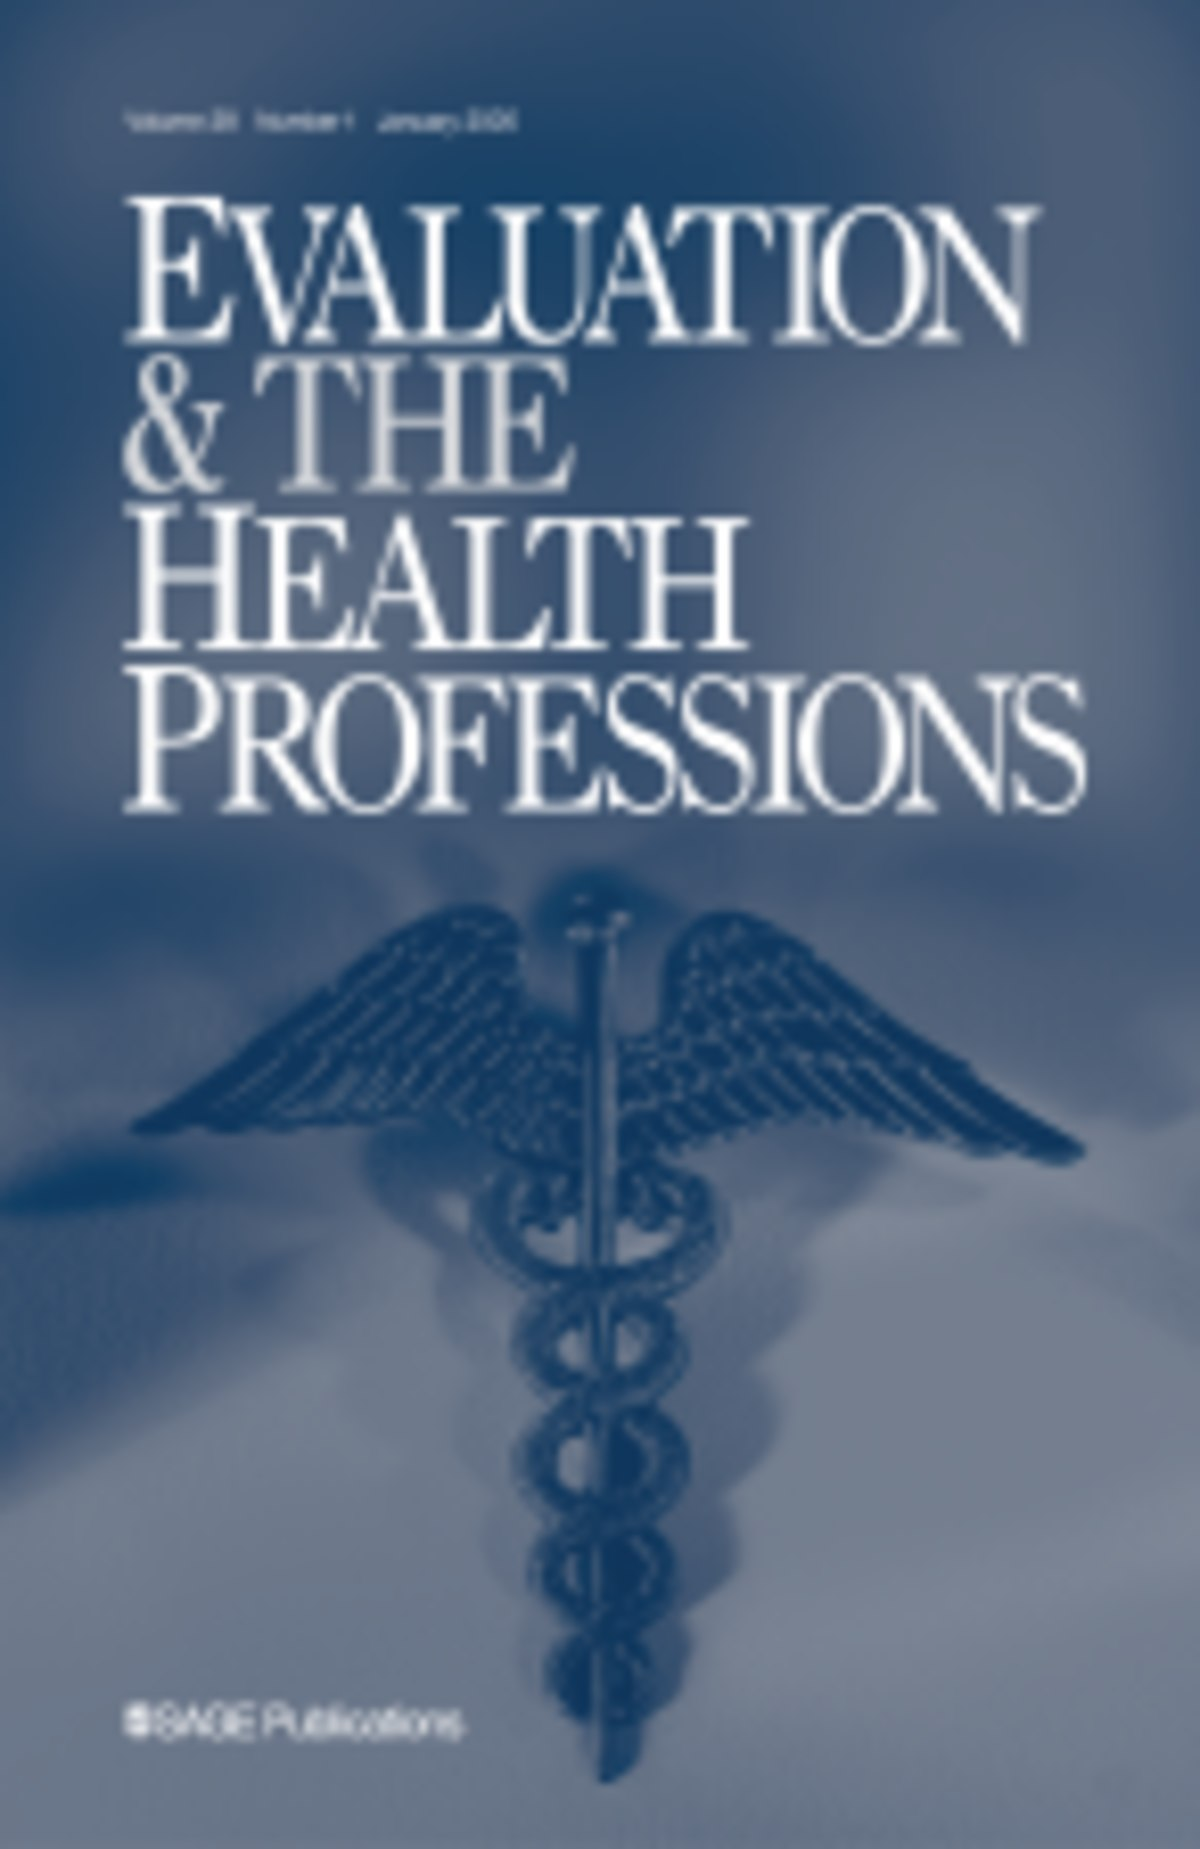 Evaluation Amp The Health Professions Wikipedia